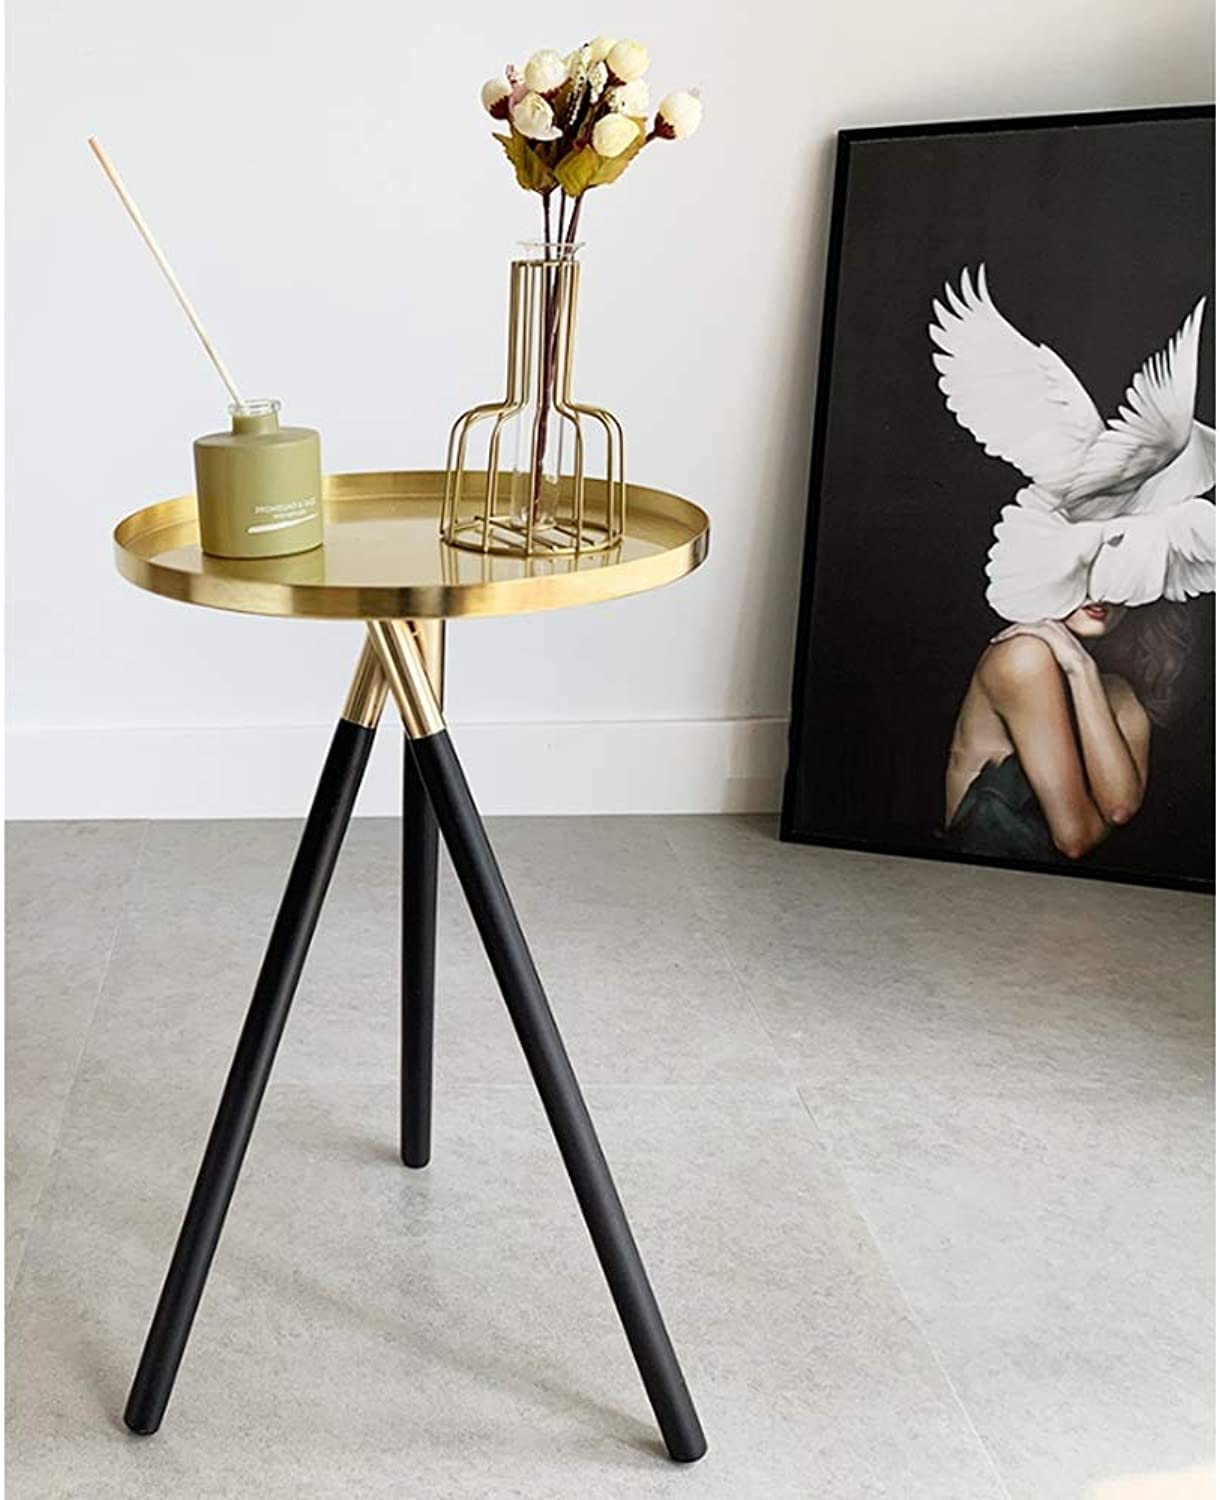 End Tables Round Metal Living Room Side Table Couch Sofa gold Bedroom Bedside for Bathroom Small Spaces Garden Entryway Office Outdoor Indoor Decor Furniture